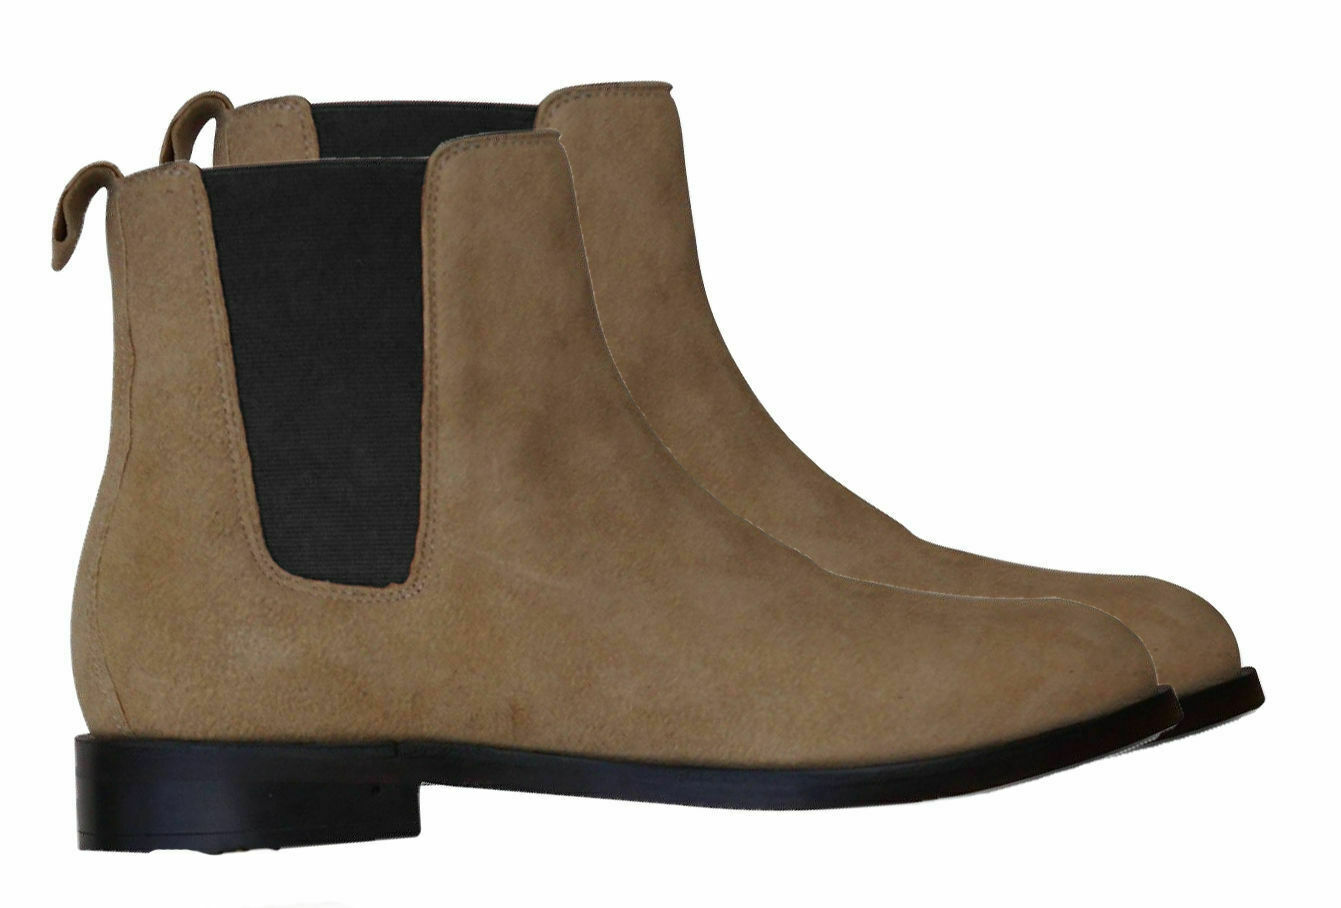 Mens Handmade Boots Chelsea Beige Suede Leather Ankle Formal Wear Casual shoes